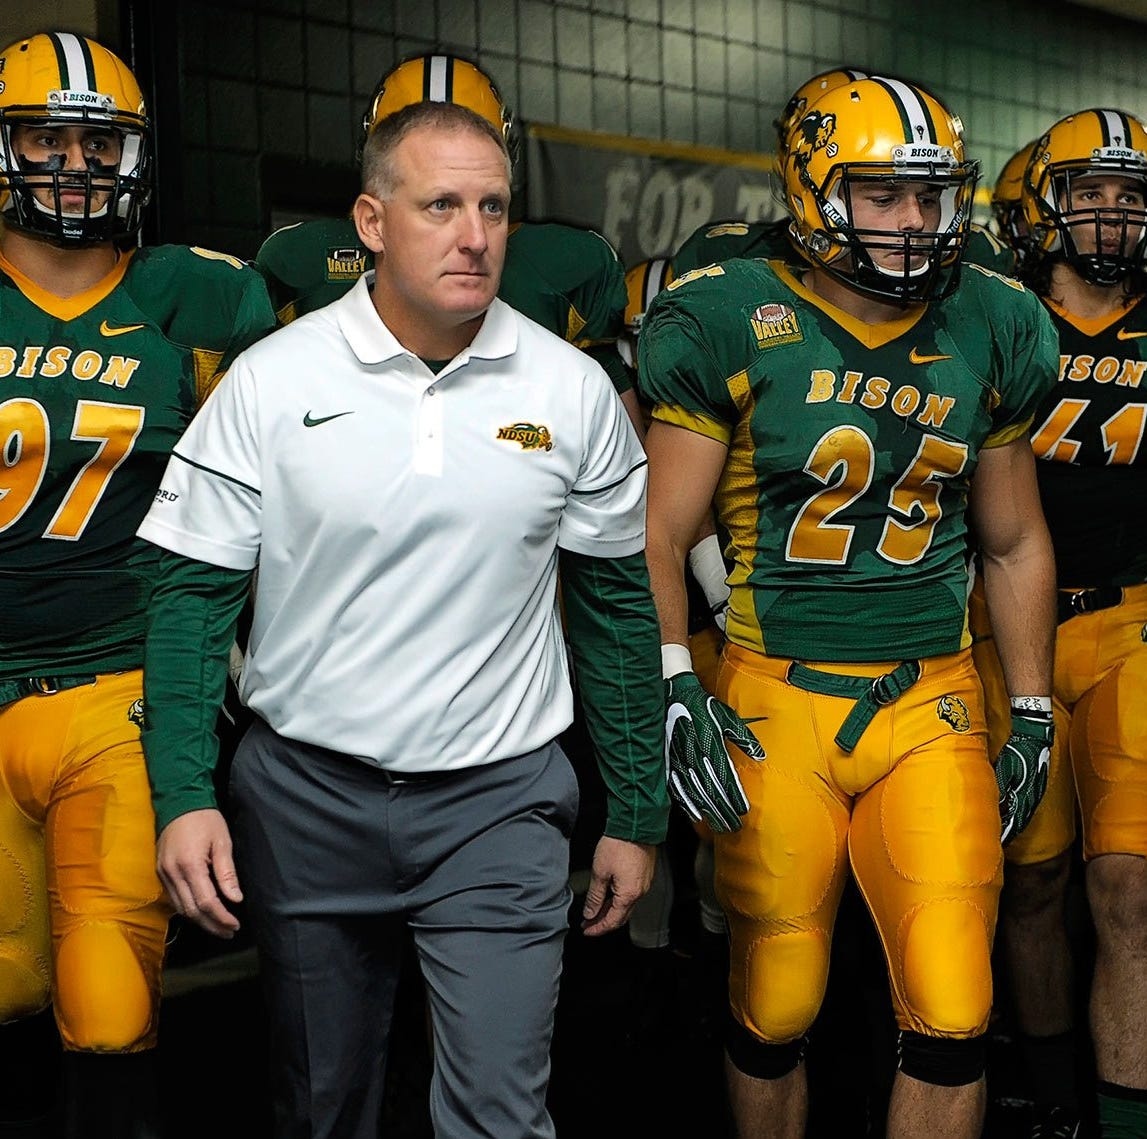 FCS playoffs: Klieman's move could spark Bison vs South Dakota State